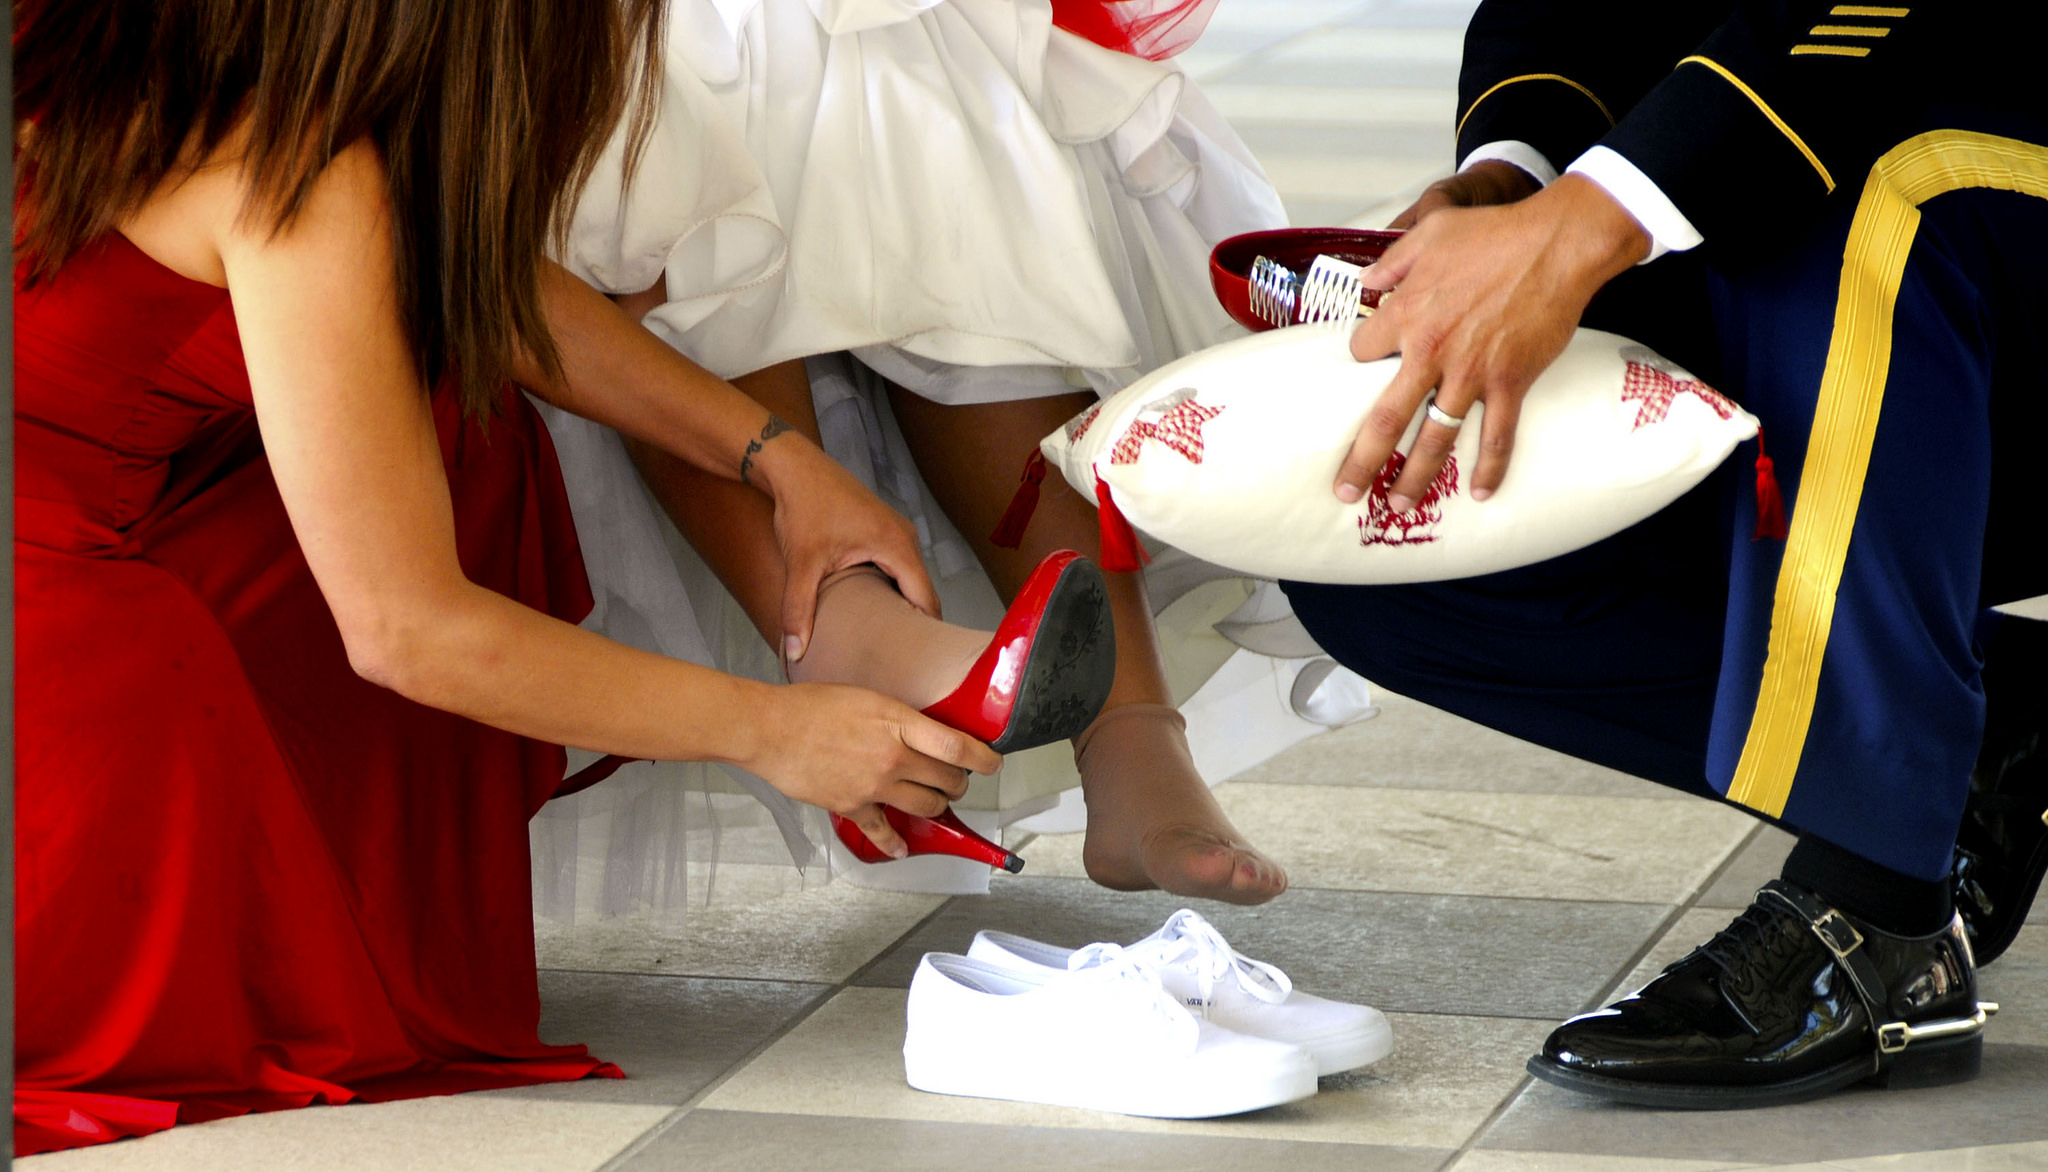 Changing her flats for heels during the quinceañera   © US Army Africa/Flickr